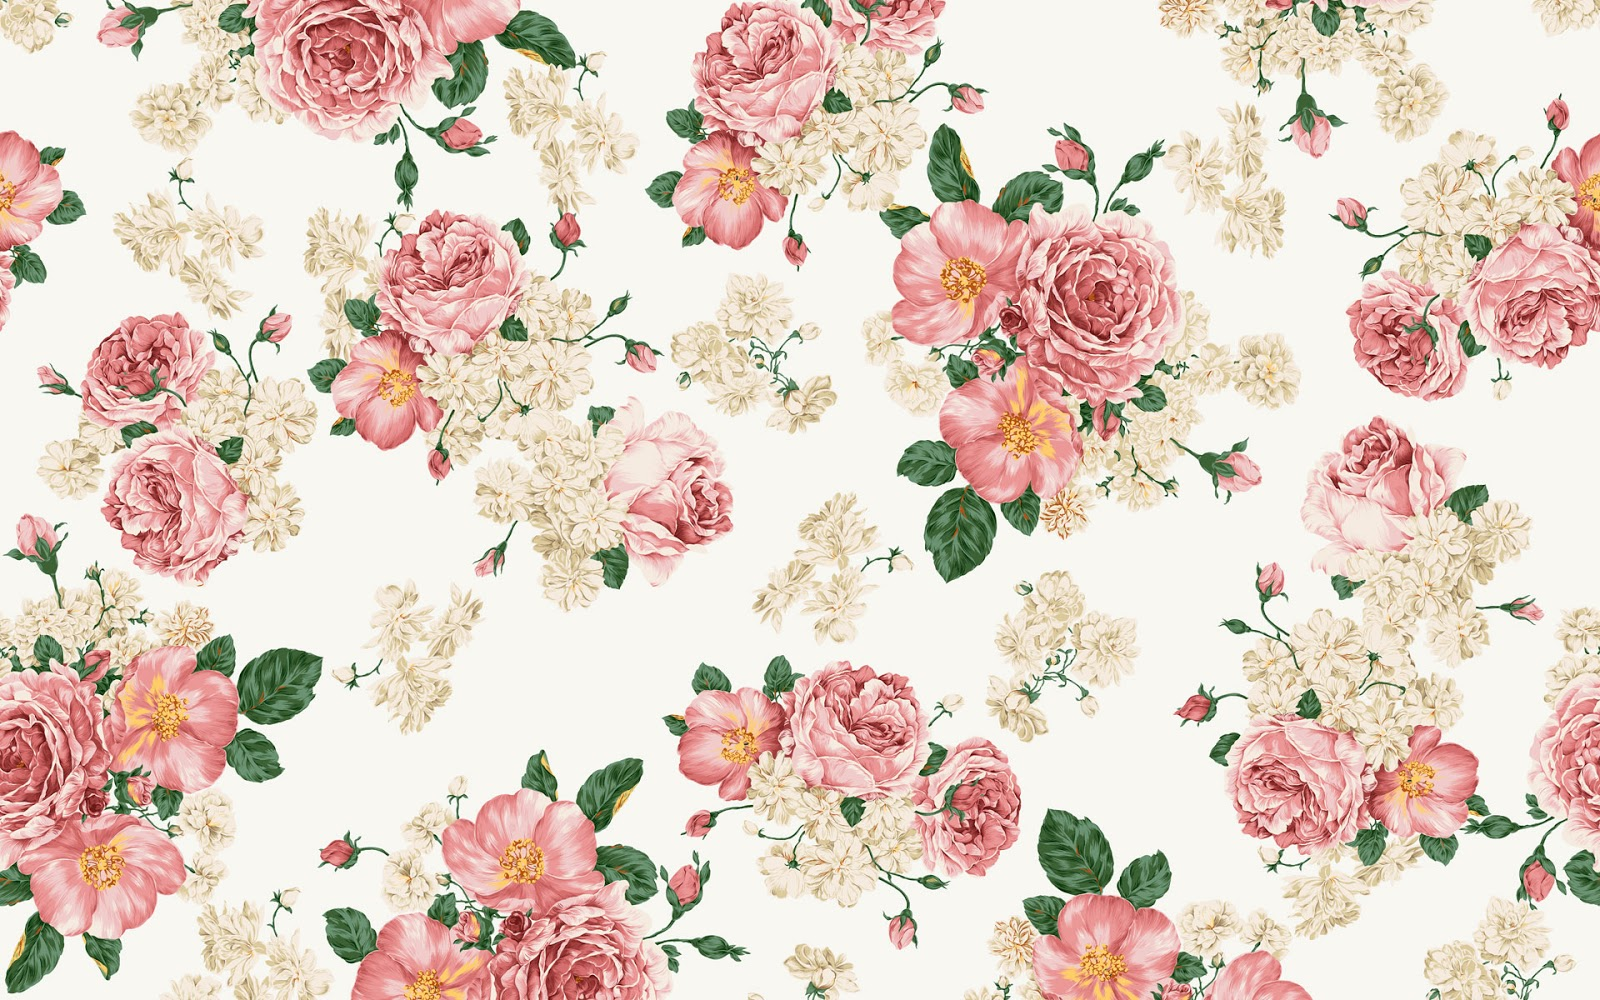 vintage floral wallpaper pattern 2017 - Grasscloth Wallpaper